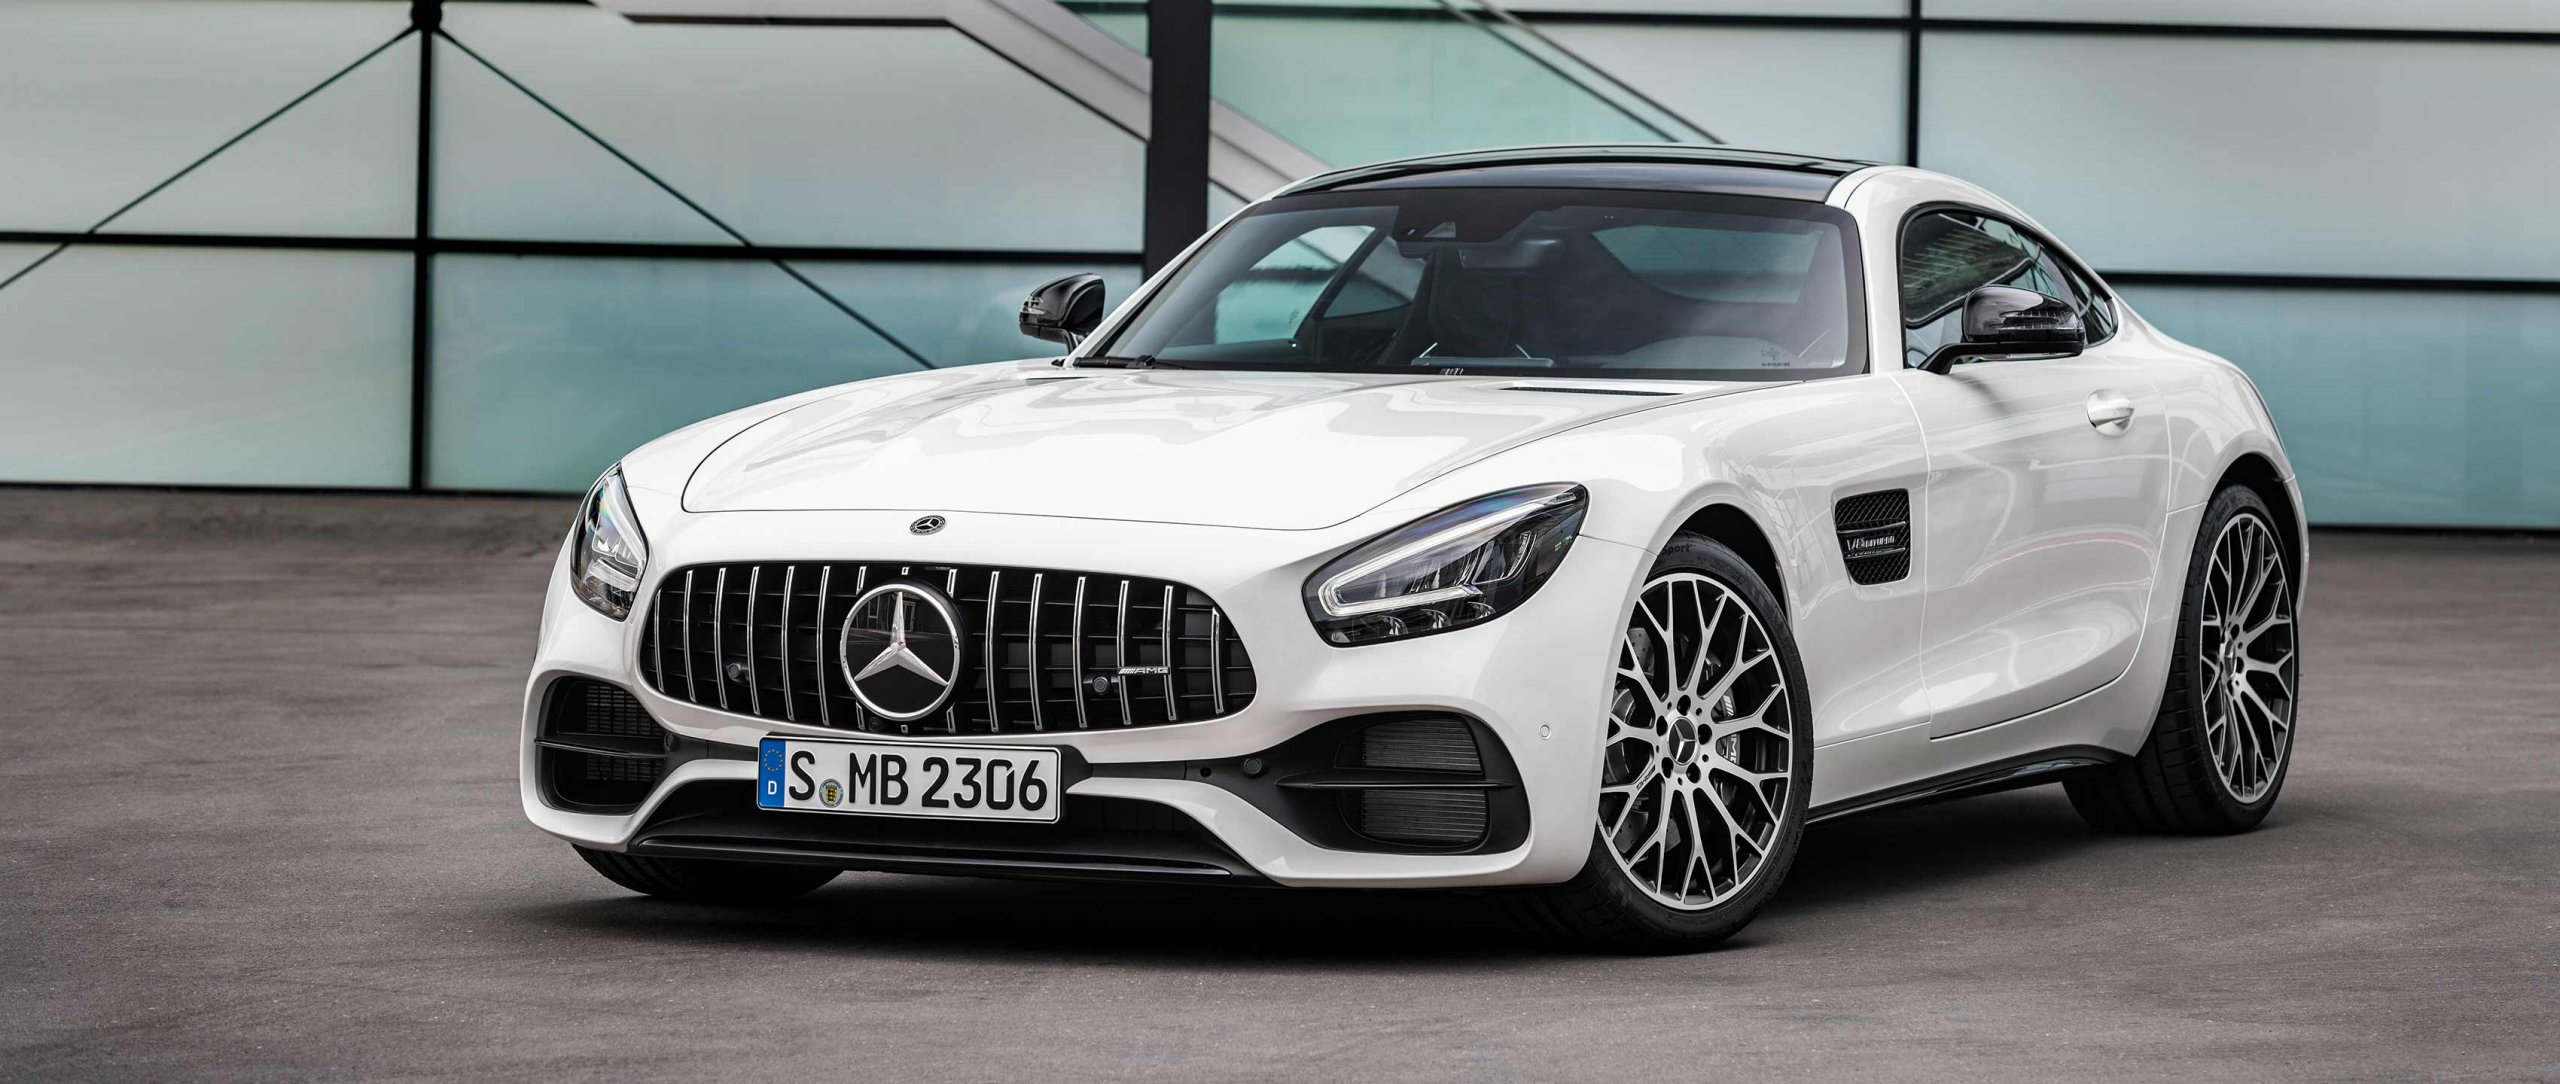 2019 Mercedes-AMG GT (C 190) Facelift in Diamond White metallic with AMG Night Package